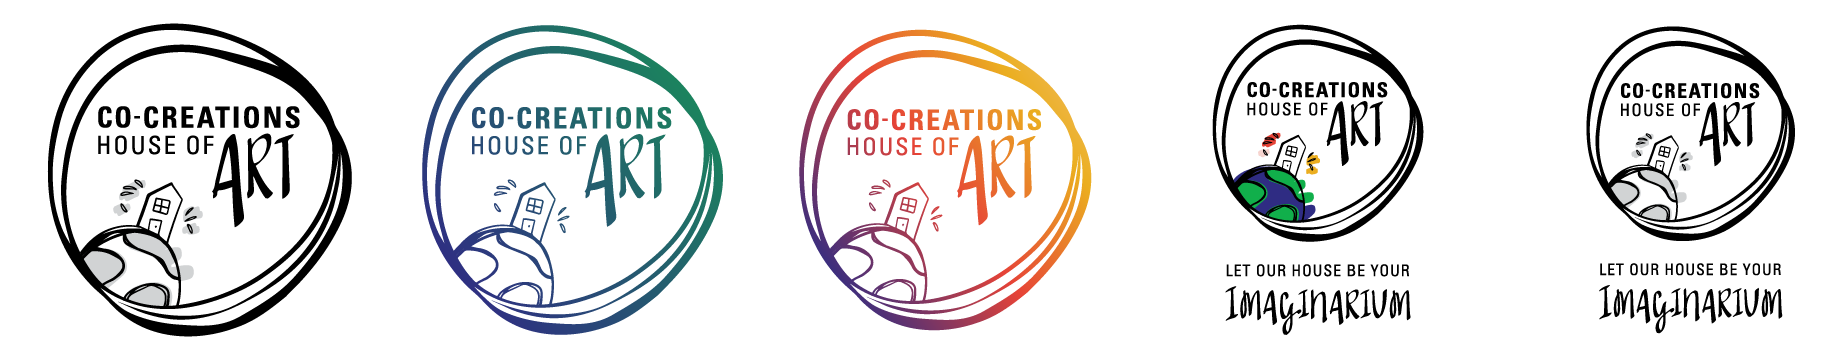 cocreations_forweb.png